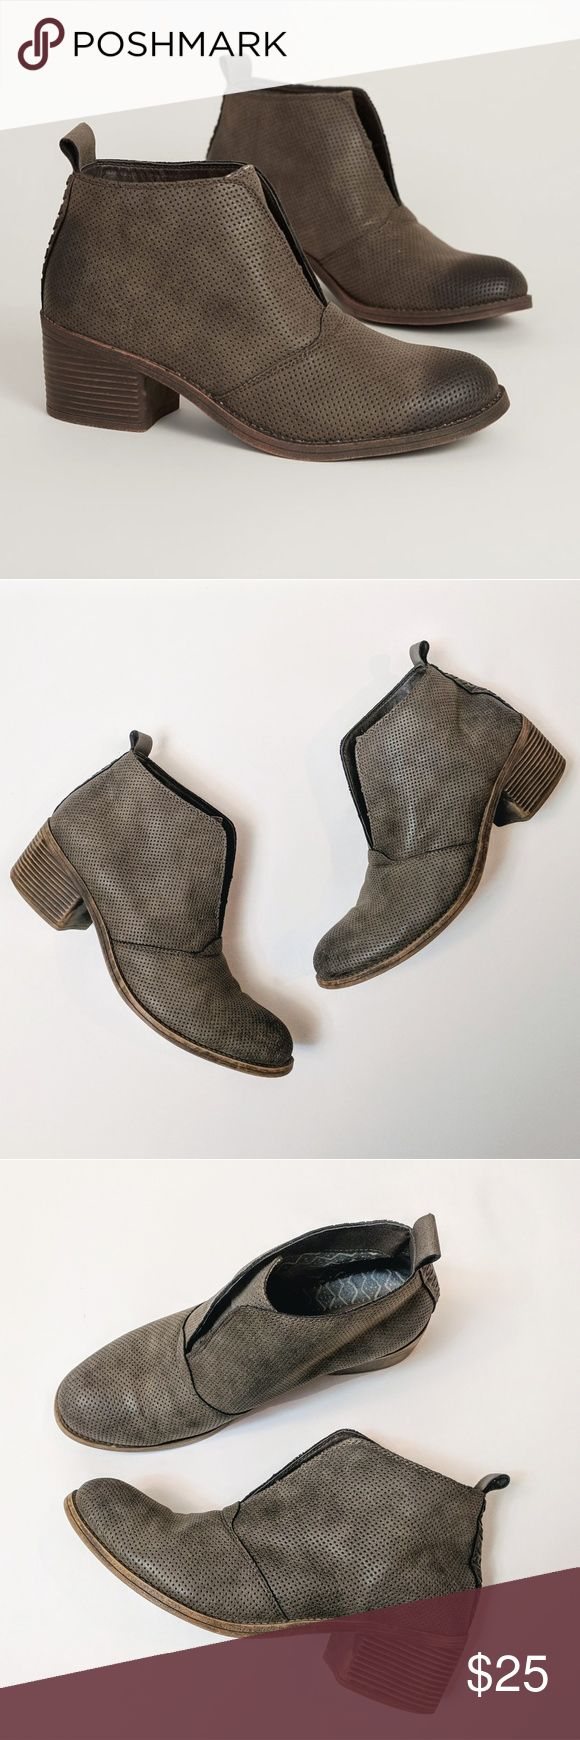 """Billabong Eccentric Ankle Bootie Faux leather perforated pull on ankle boots in espresso. Woven detail on the back heel. 2"""" block heels. Pull on tab at the top of ankles. Size 10. Great condition! Billabong Shoes Ankle Boots & Booties"""